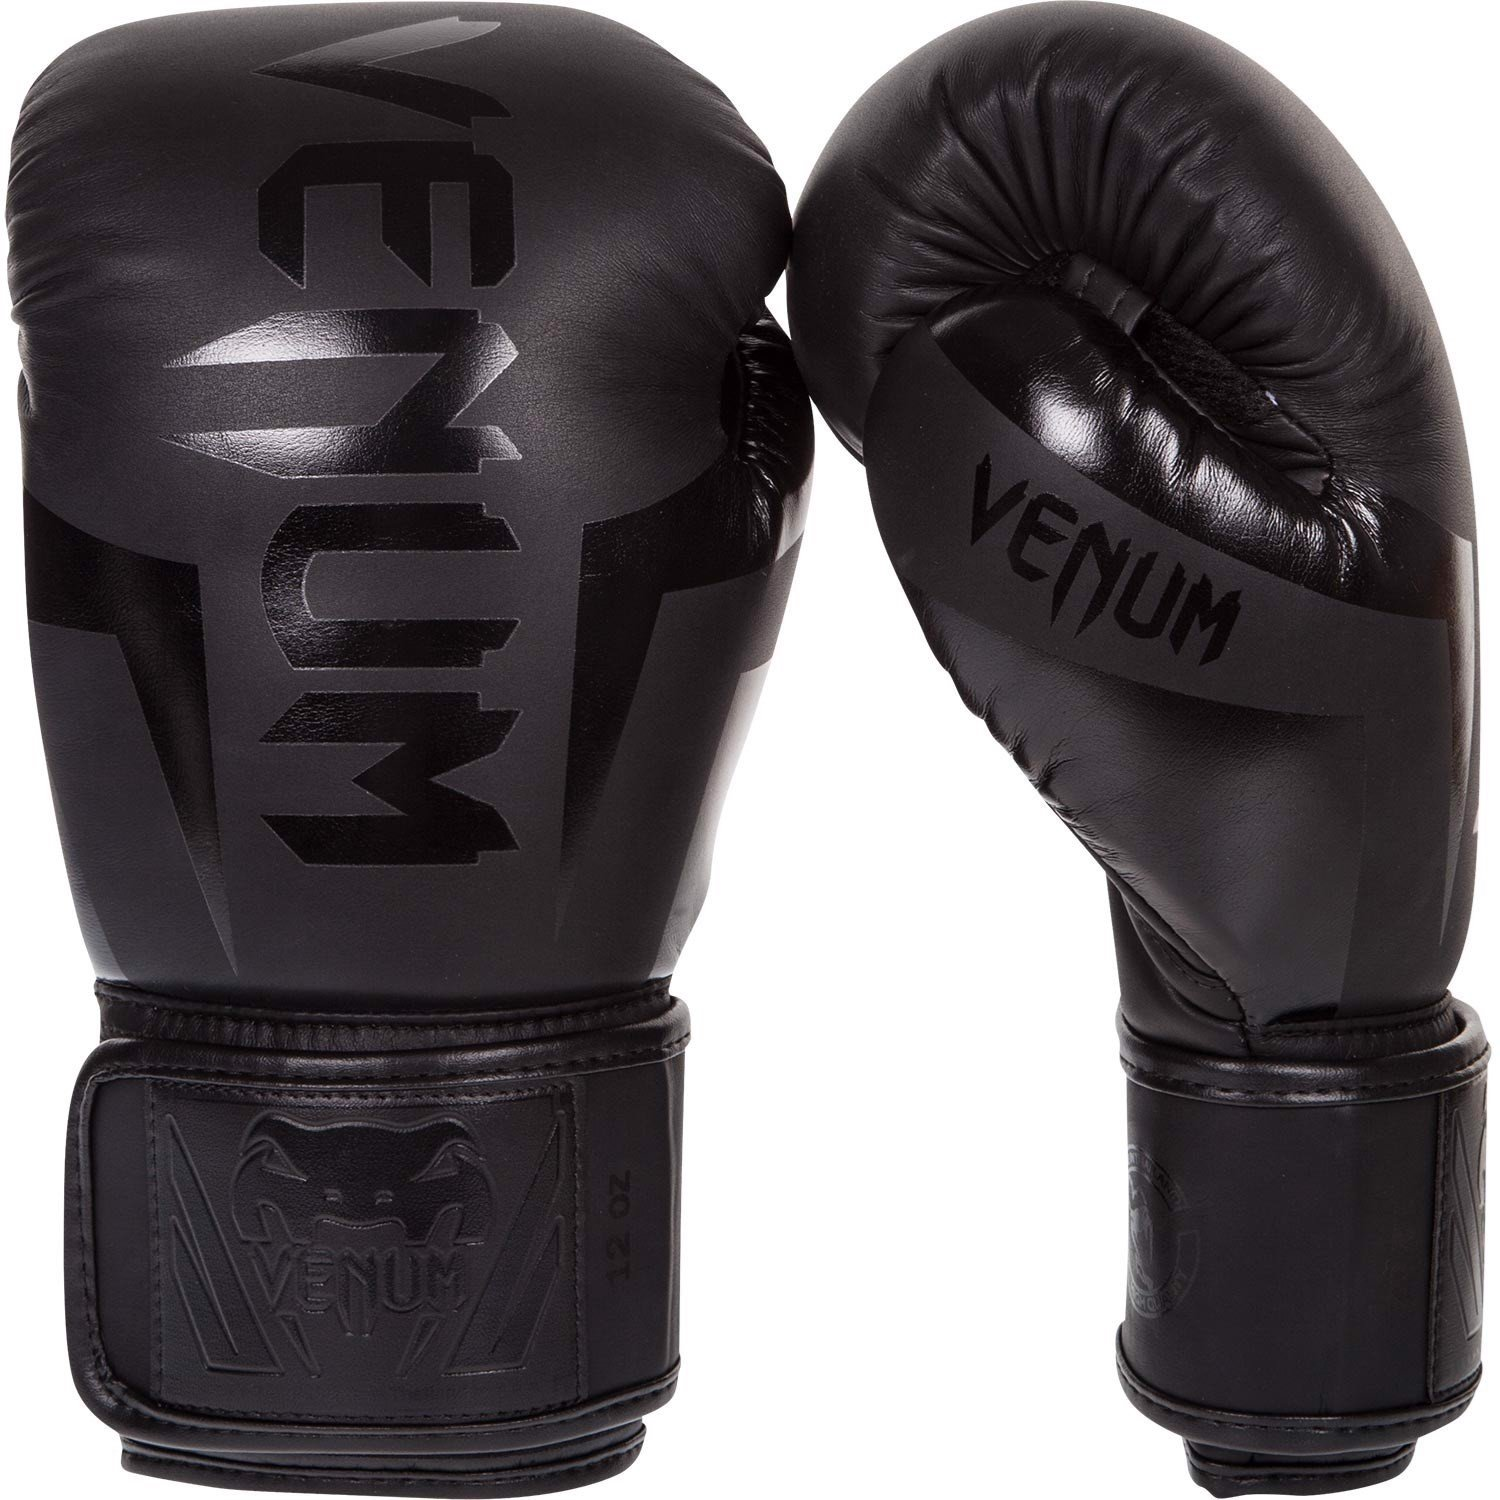 Găng Tay Venum Elite Boxing Gloves - Black/Black